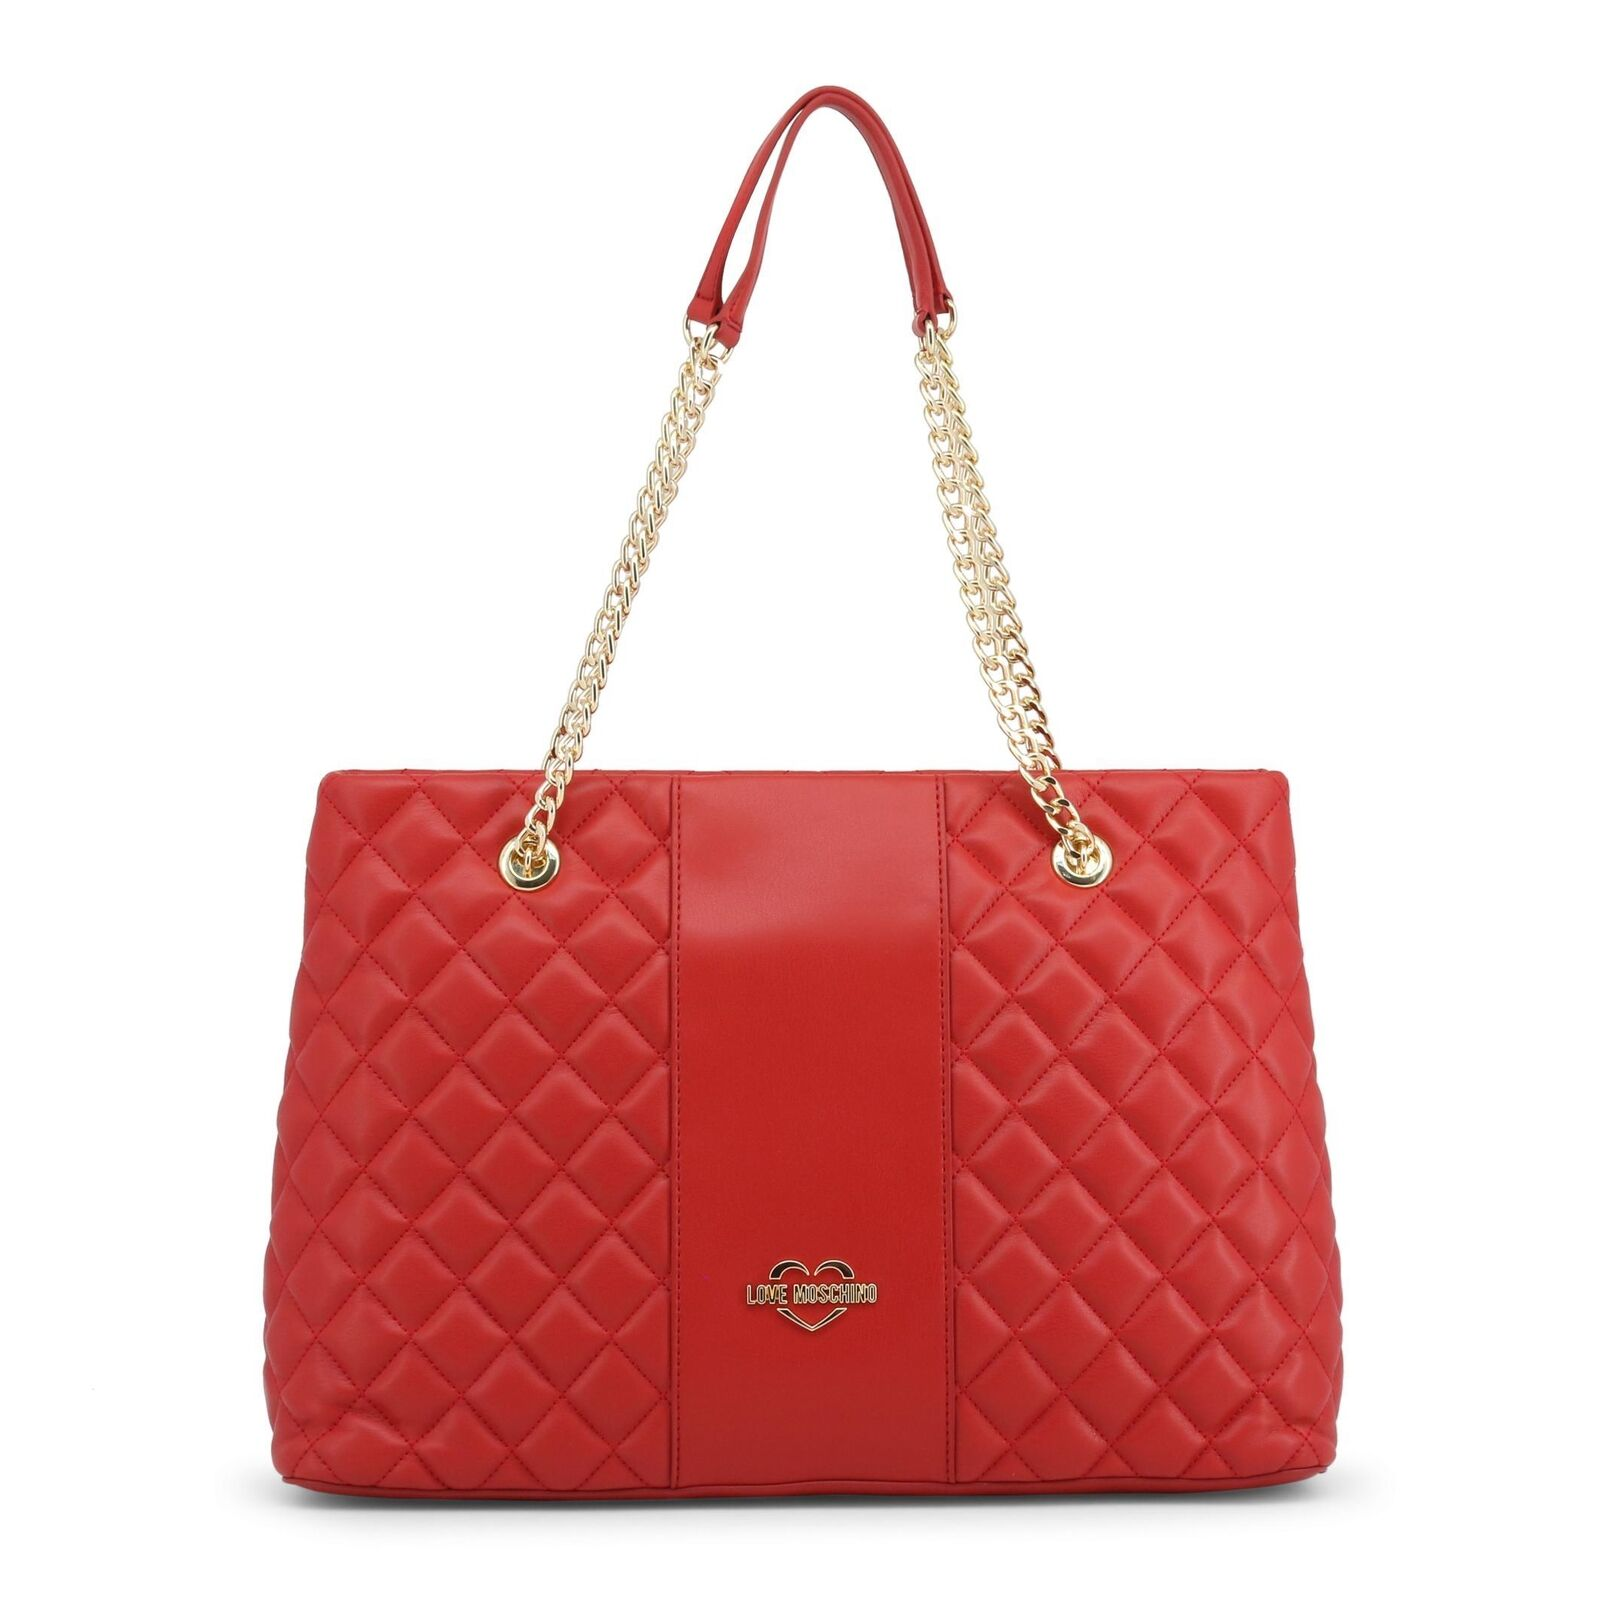 3ed02a4dd8a Love Moschino JC4003PP16LA Women's Shoulder Bag Red 8054388390385 | eBay